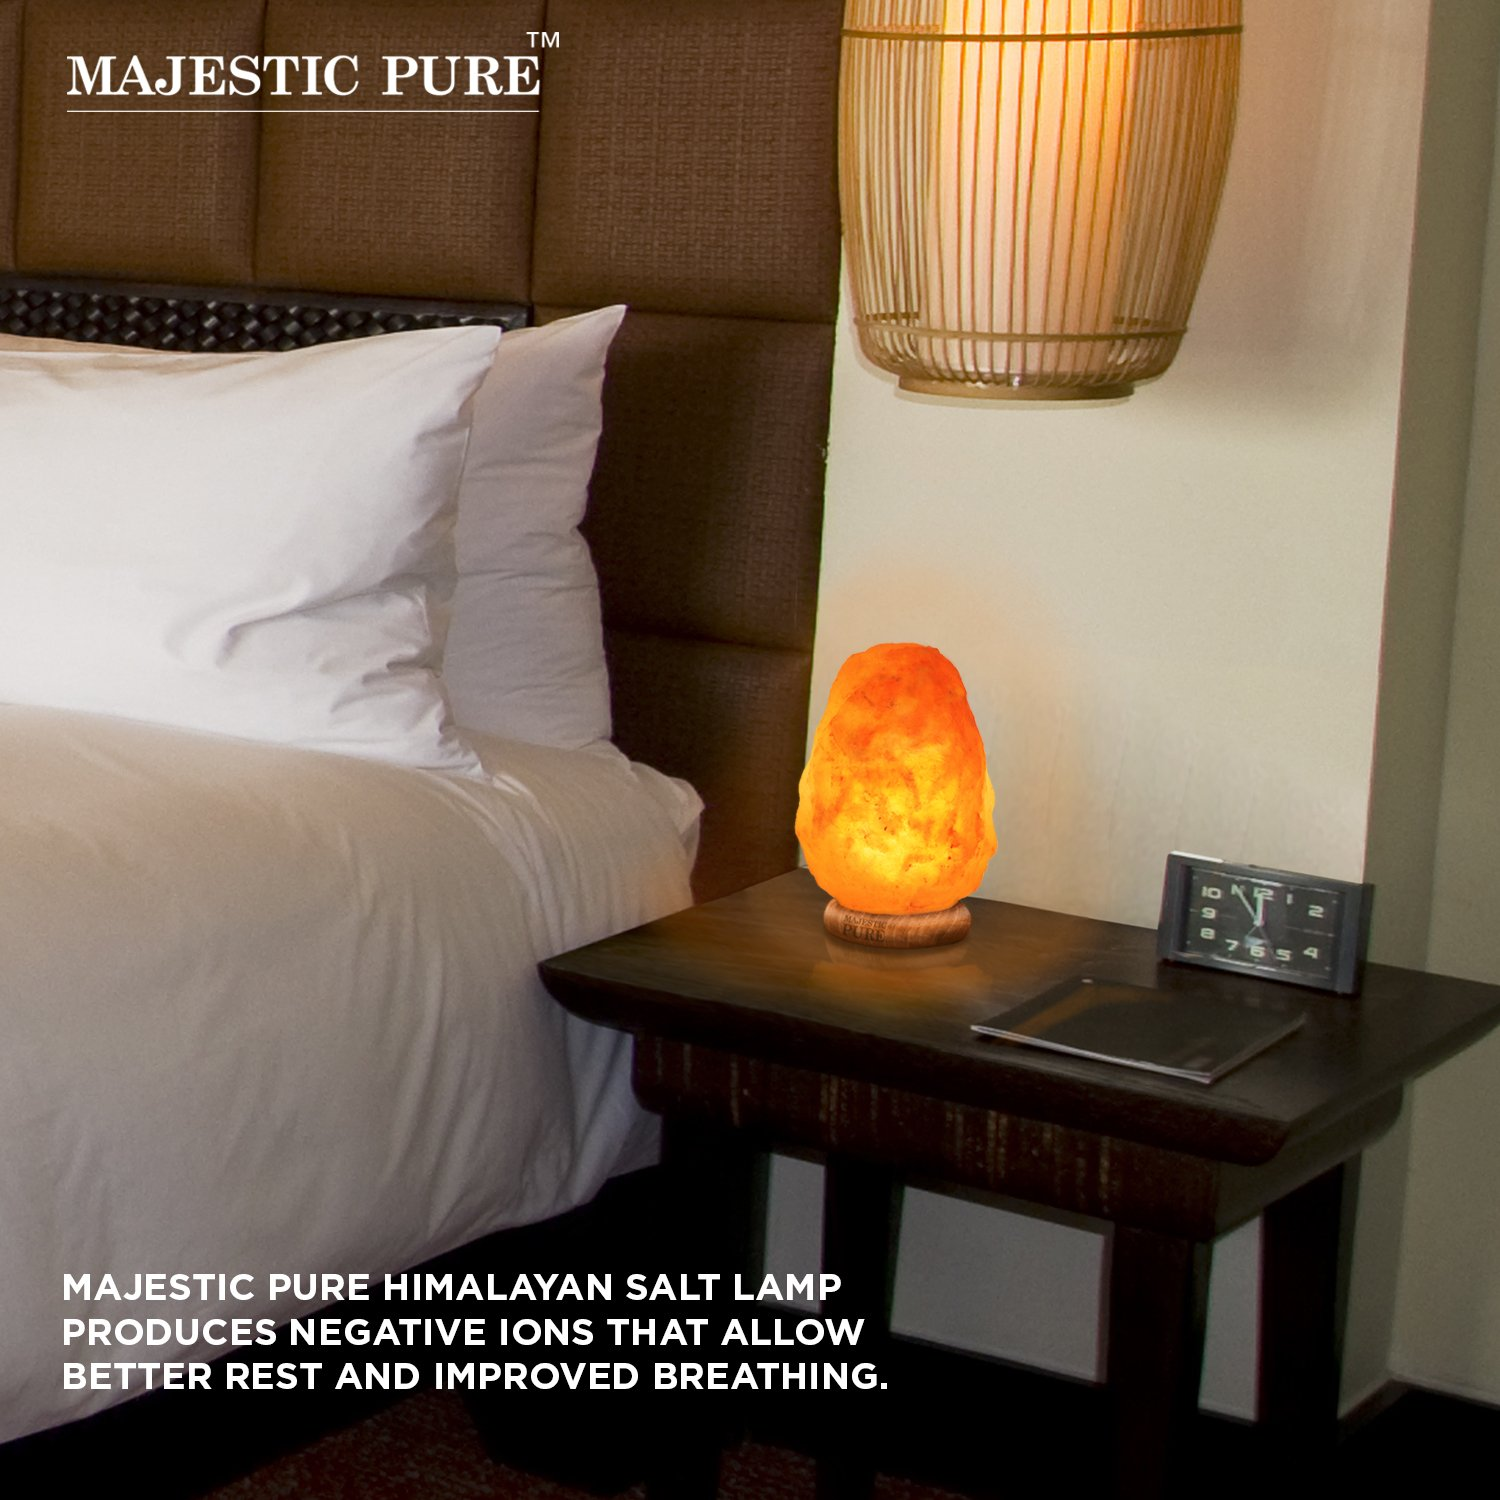 Majestic Pure Himalayan Salt Lamp - Natural Pink Salt Rock Lamp, Hand Carved, Wooden Base, Brightness Dimmer, 3 Bulbs, UL-Listed Cord and Gift Box, 8-11 lbs by Majestic Pure (Image #3)